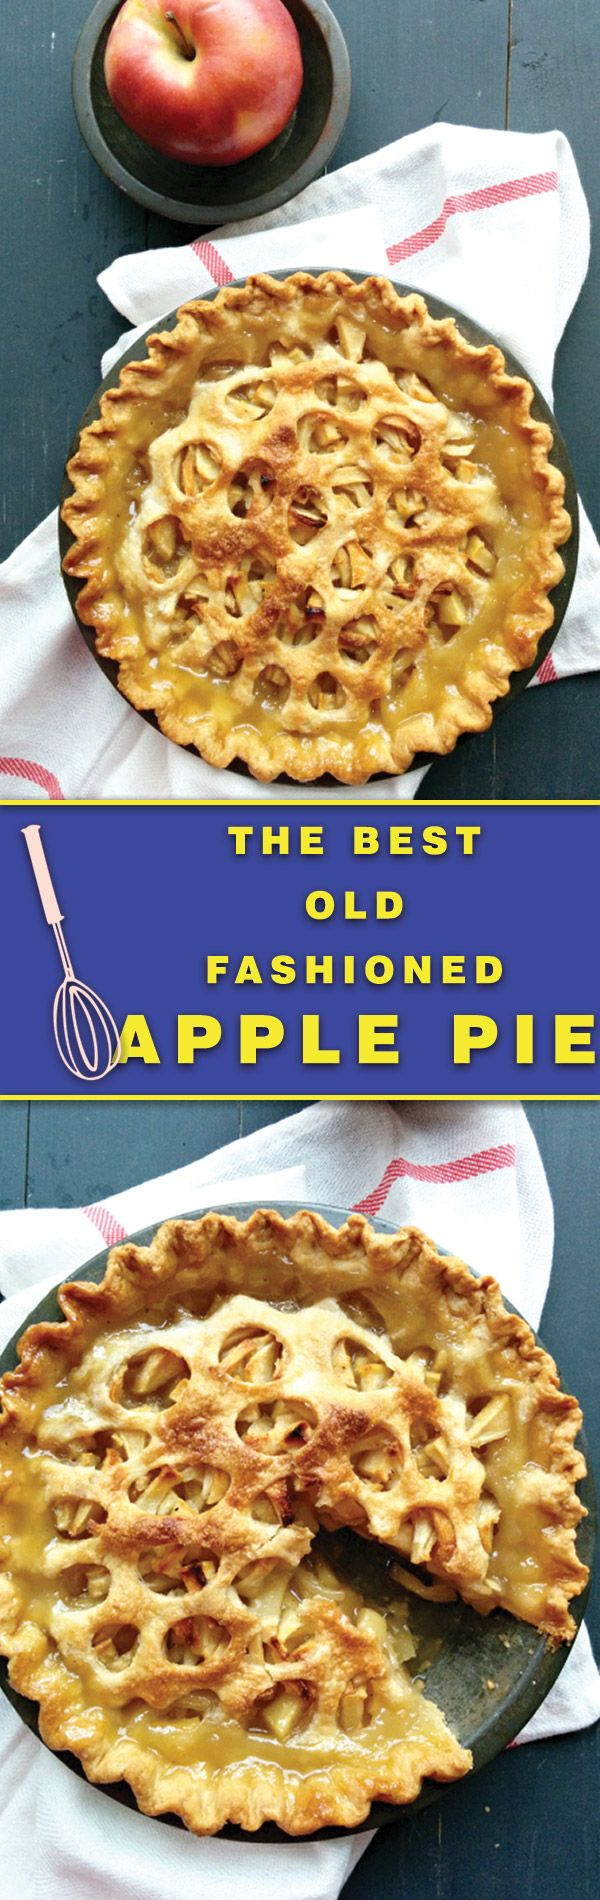 old fashioned apple pie best apple pie apple pies old fashioned apple ...